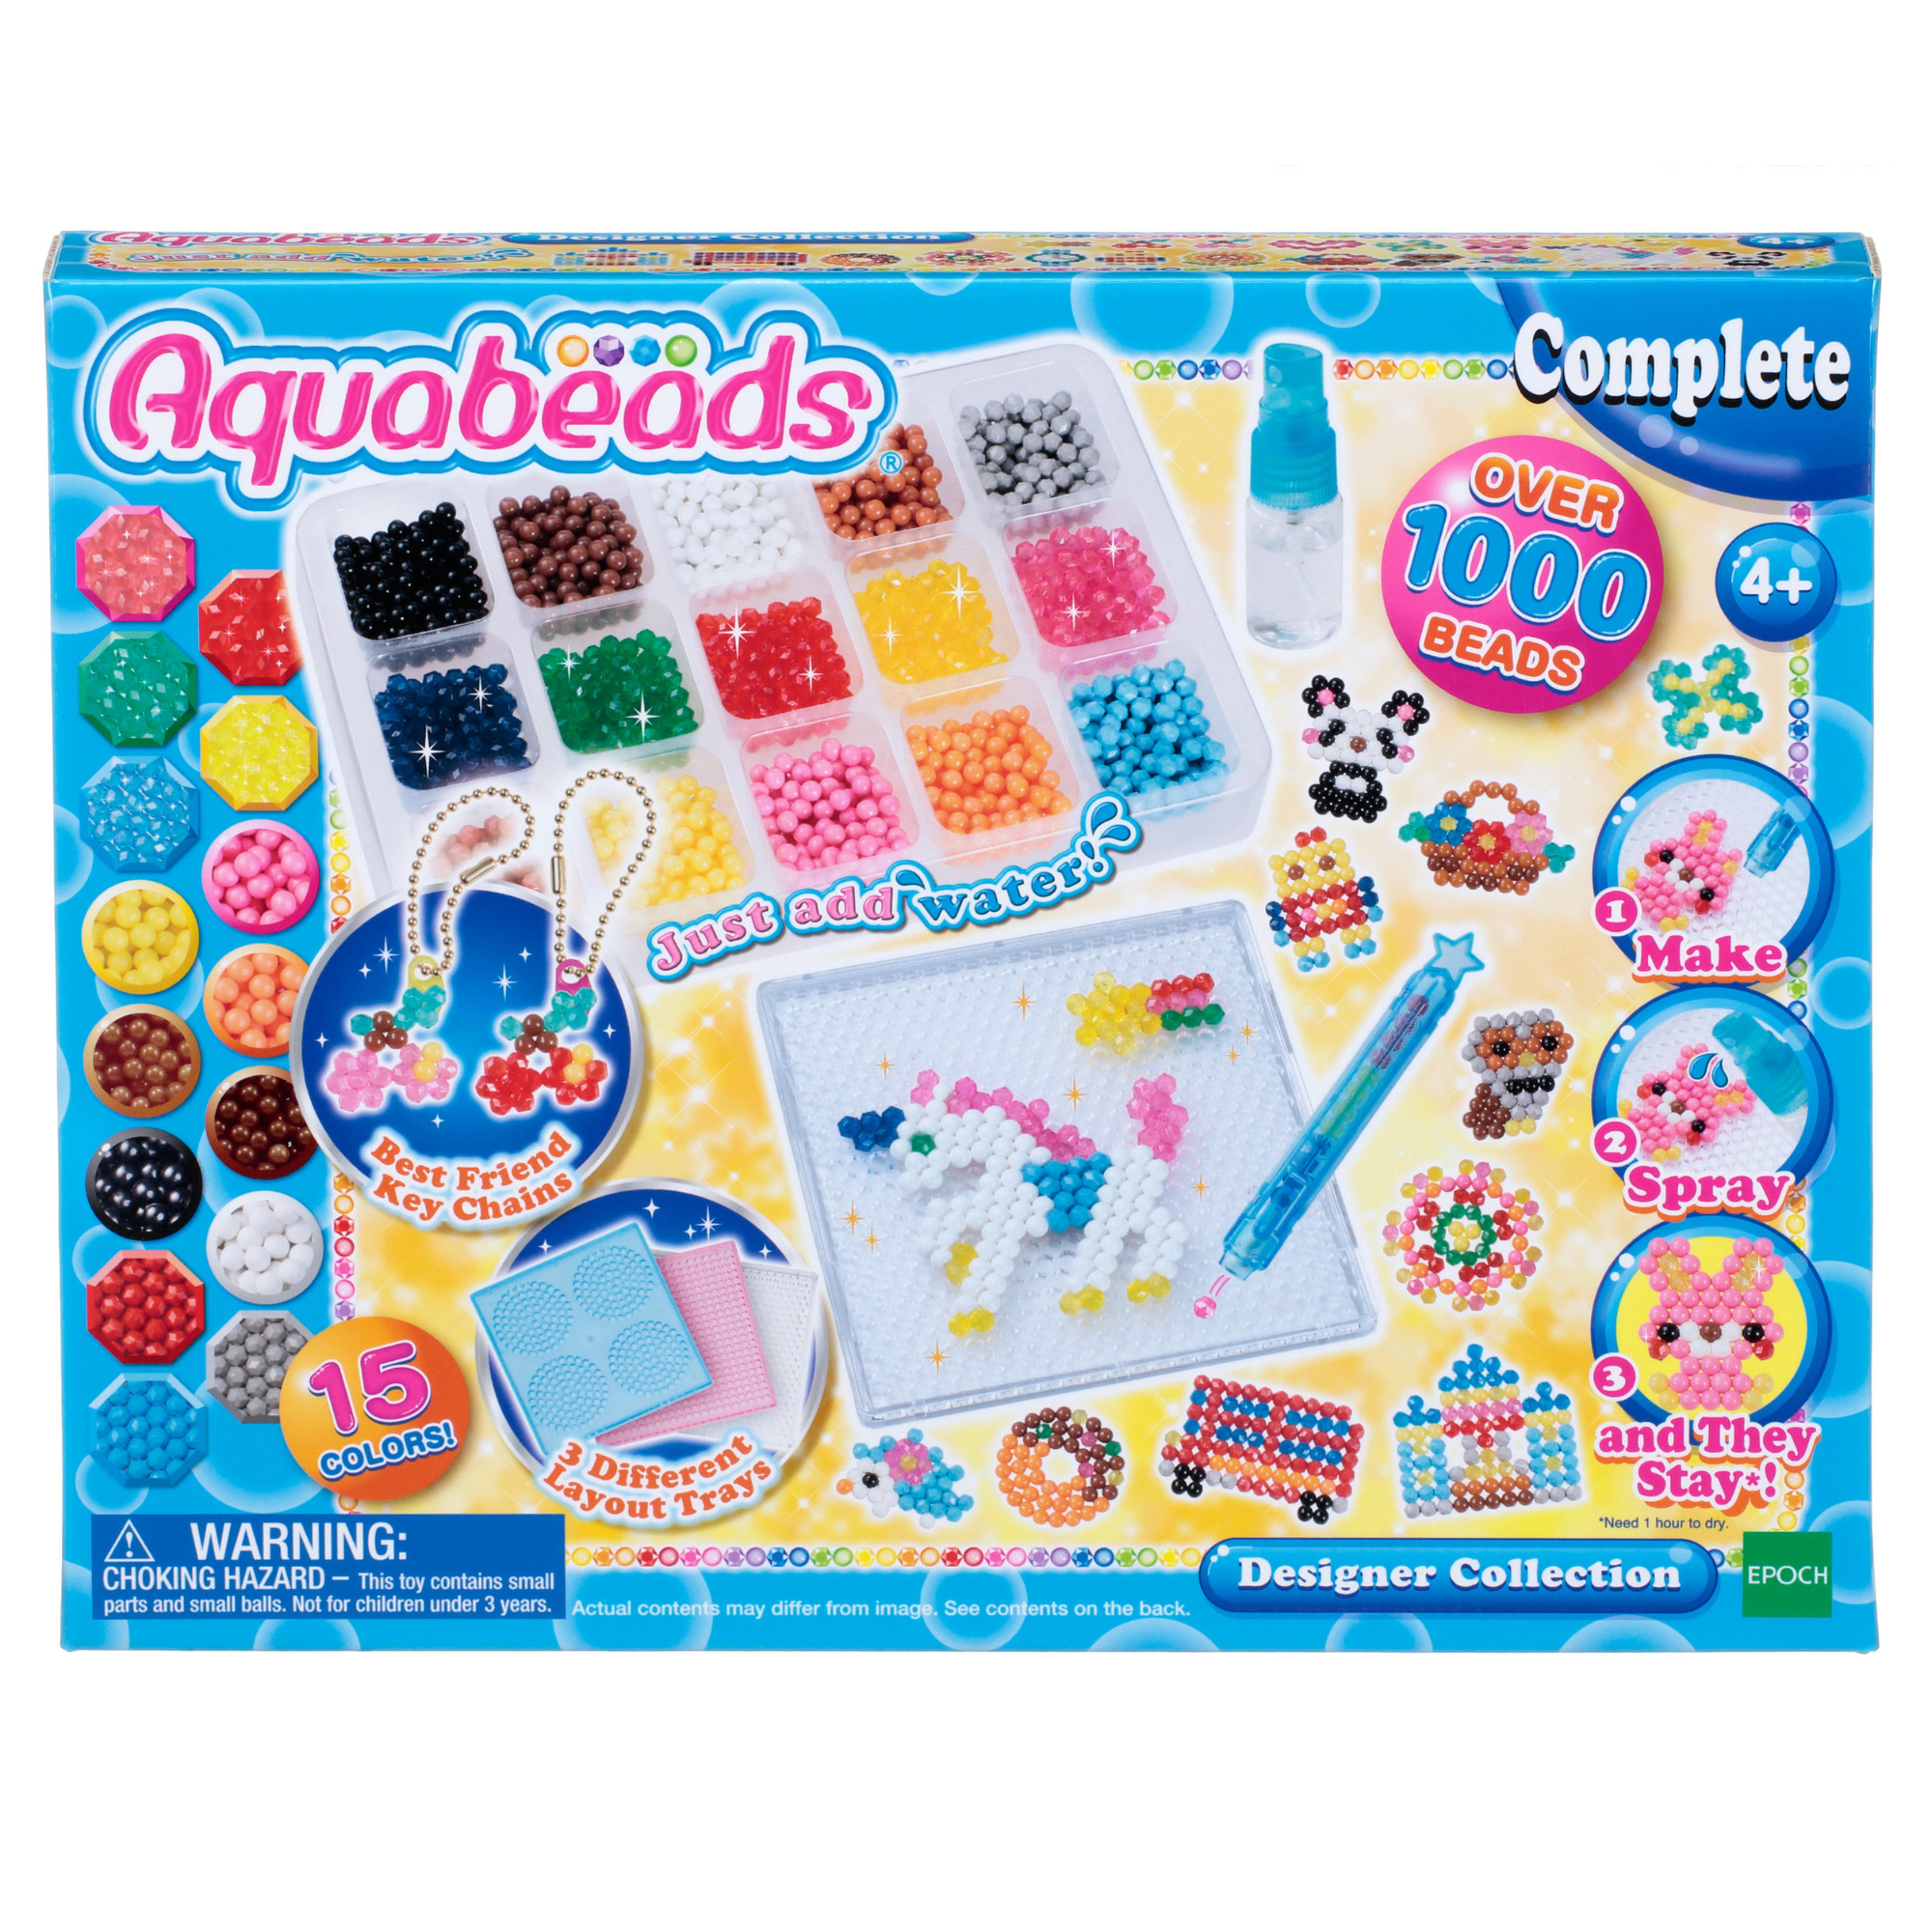 Aquabeads Designer Beads Collection Set: Endless Creations!